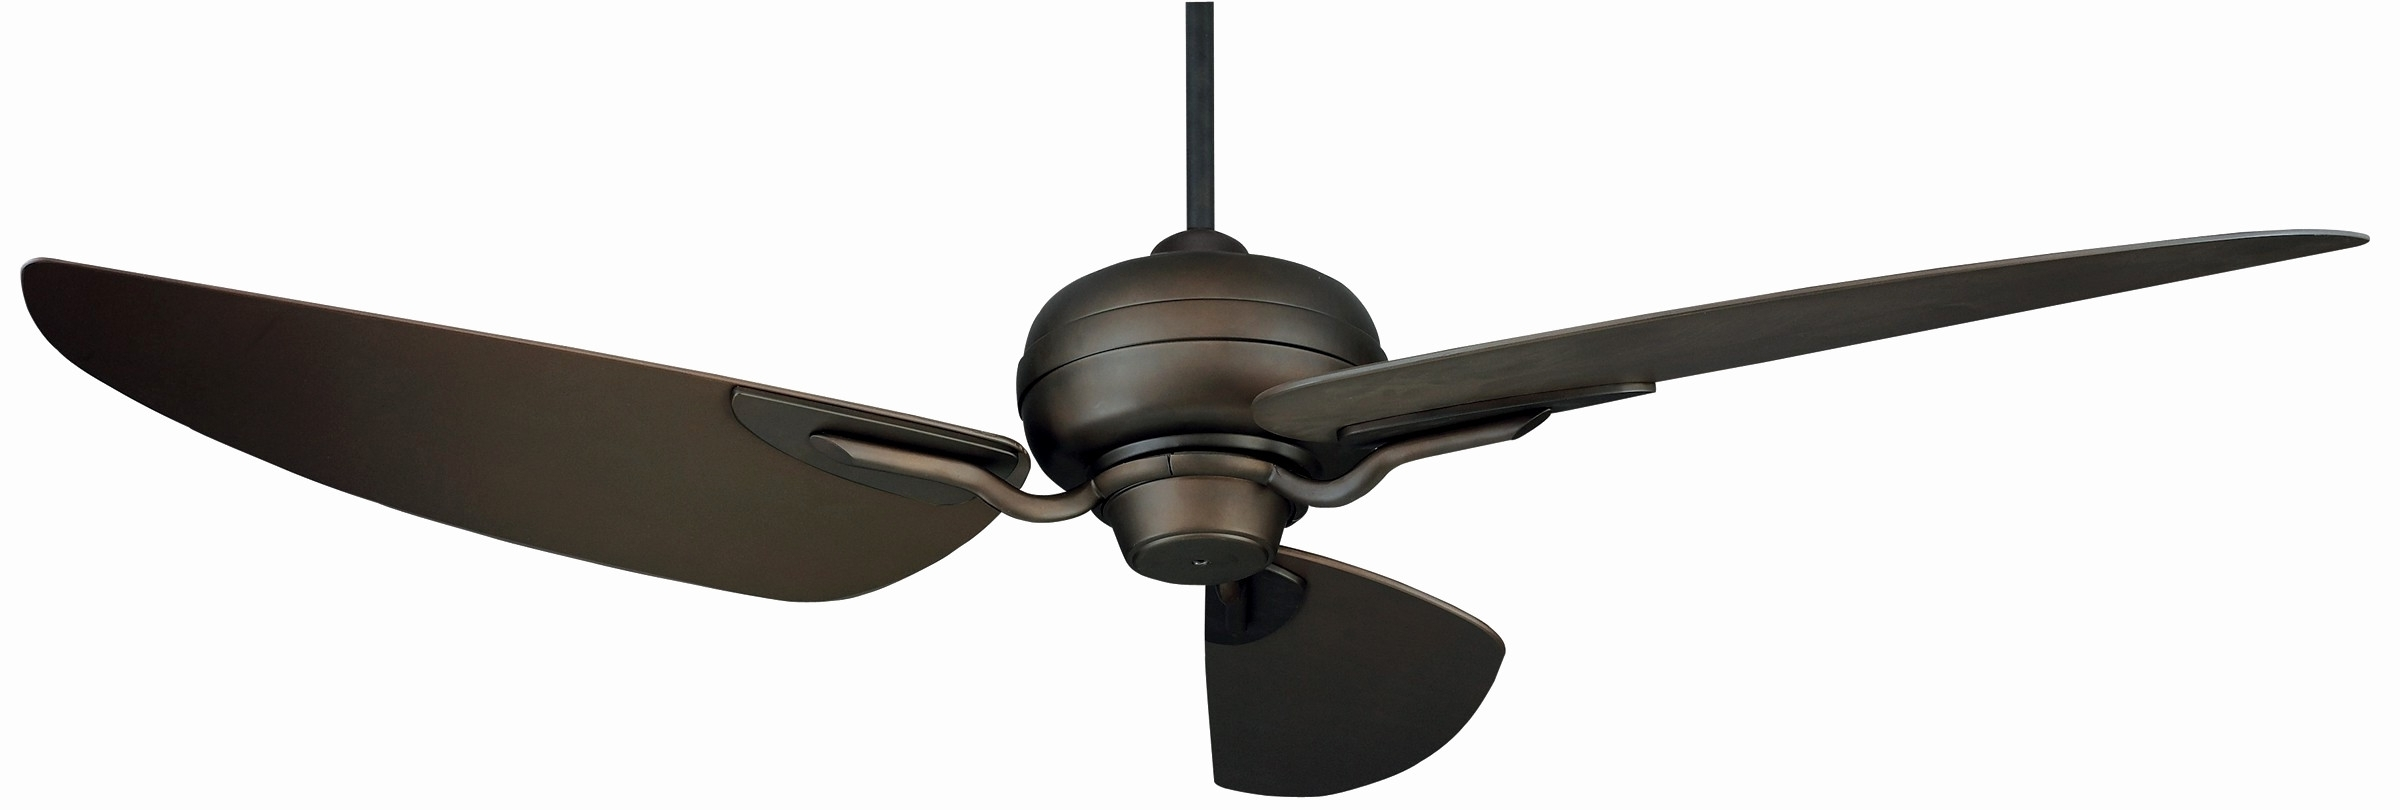 Trendy 60 Inch Outdoor Ceiling Fans With Lights With Best Inch Outdoor Ceiling Fan Ideas Inch Outdoor Fan 72 Of 60 Remote (View 7 of 20)